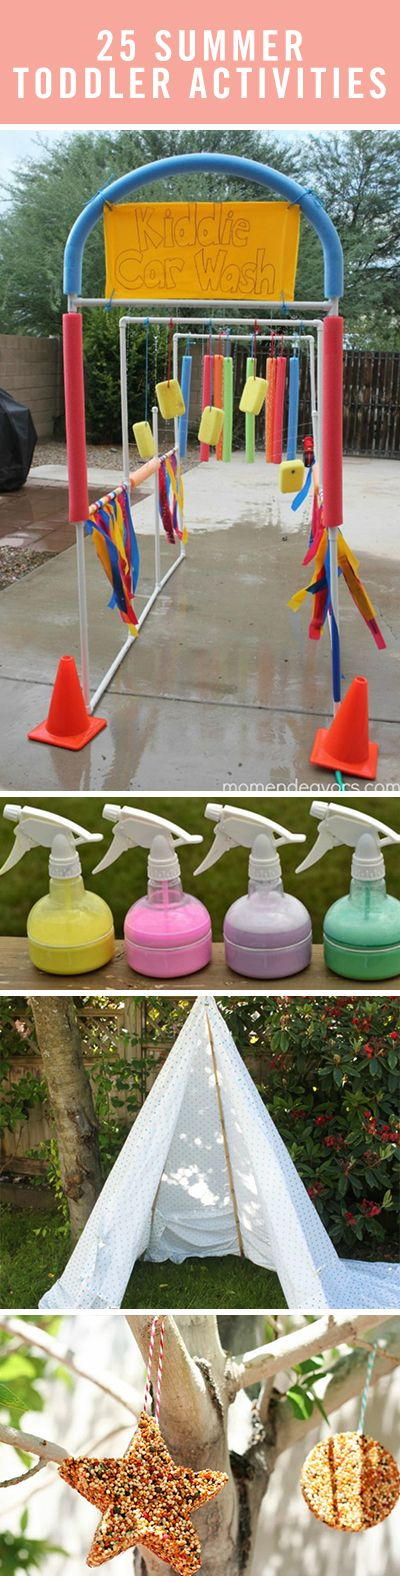 Fun Arts And Crafts For Toddlers Side Walk Chalk